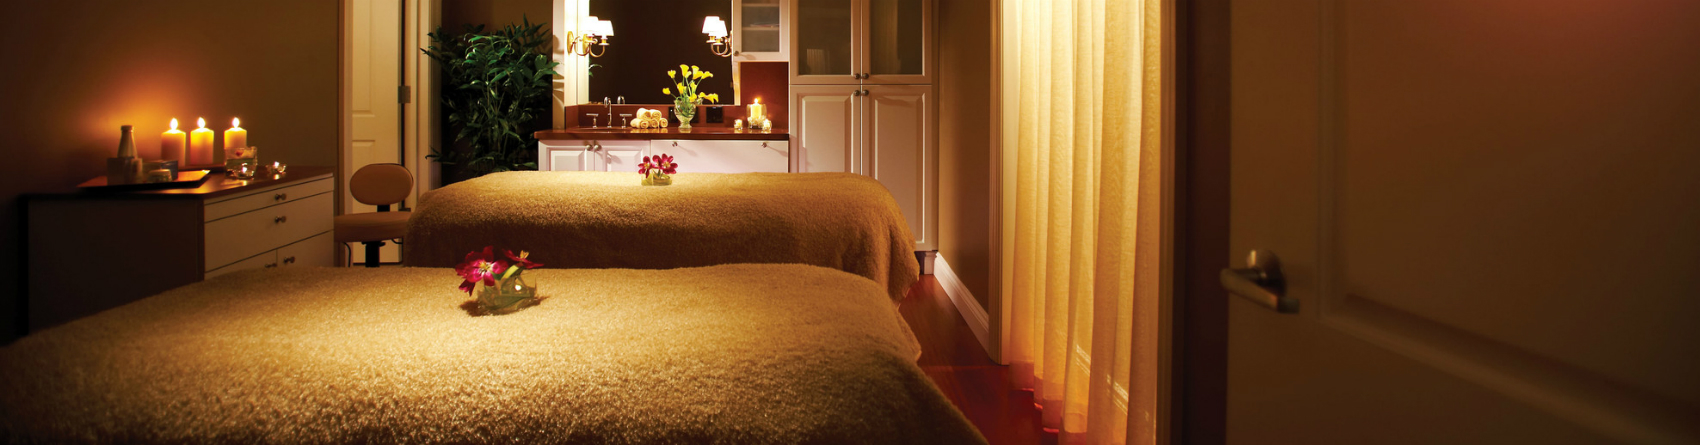 WELL Spa + Salon is the perfect way to relax at The Pfister